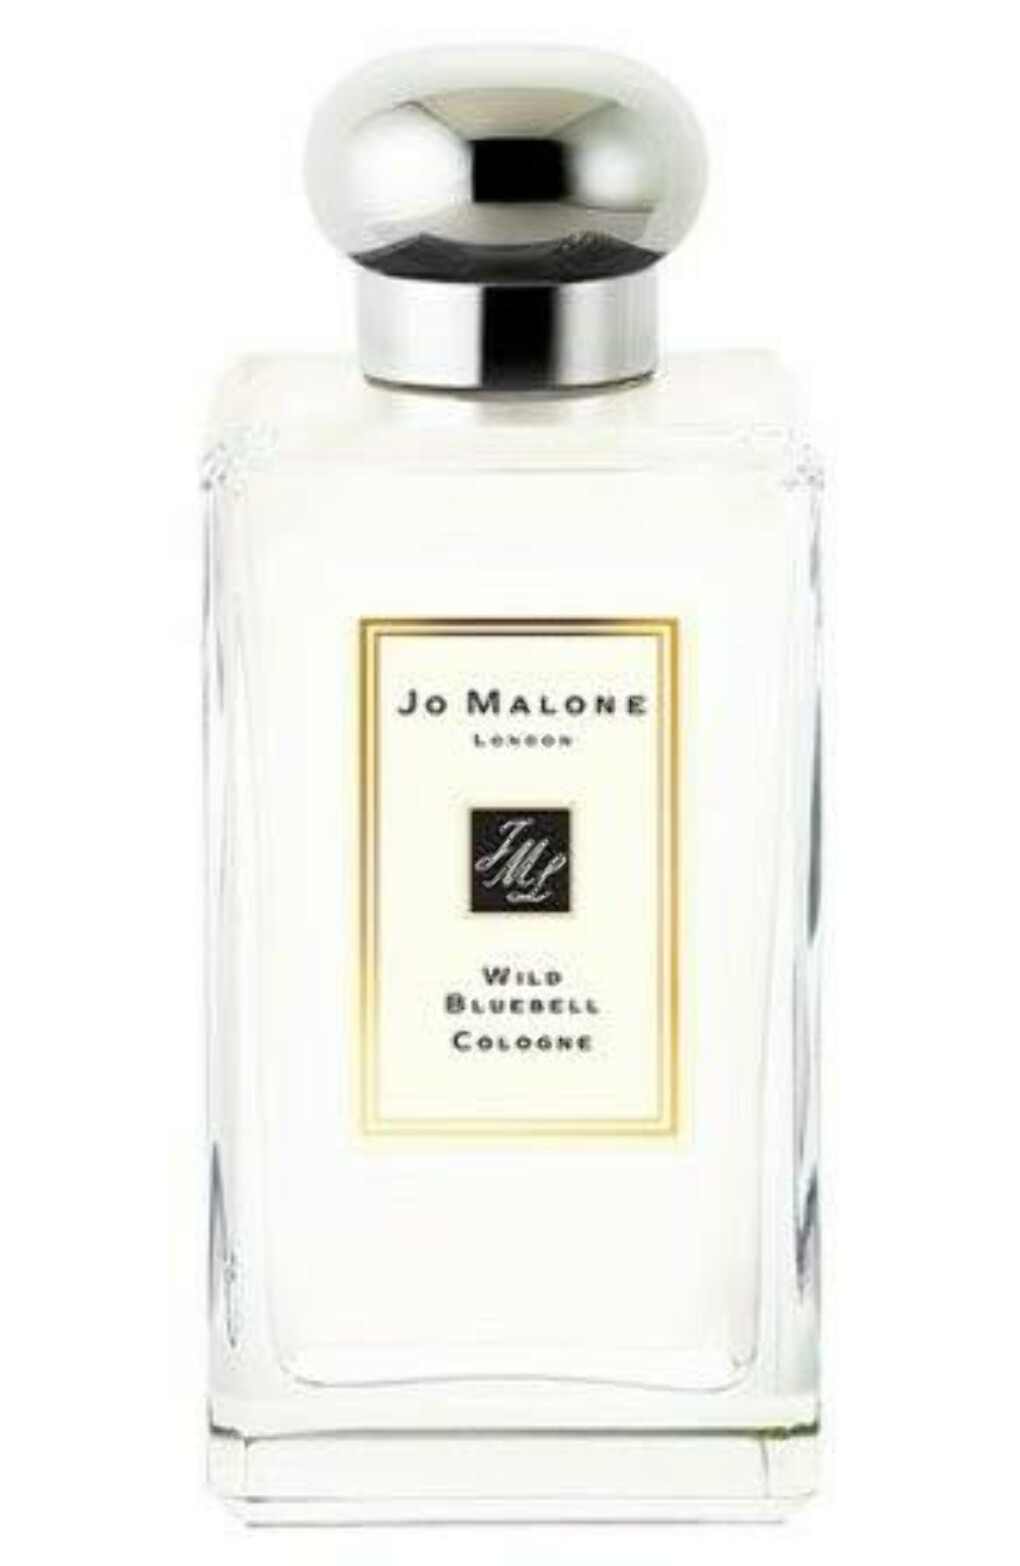 Jo Malone™ Wild Bluebell Cologne